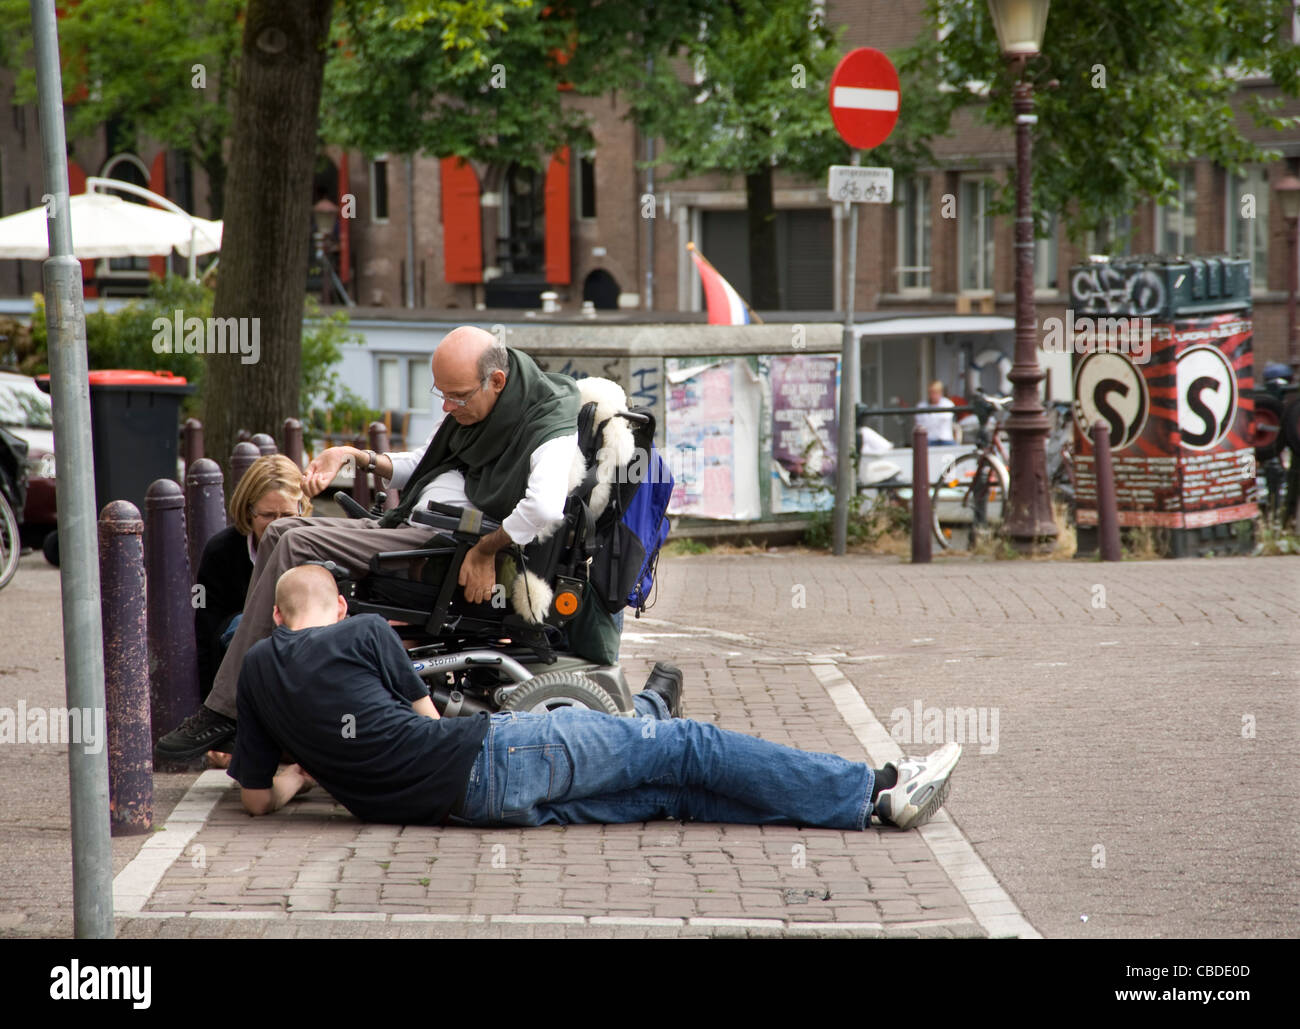 Wheelchair being repaired - Stock Image